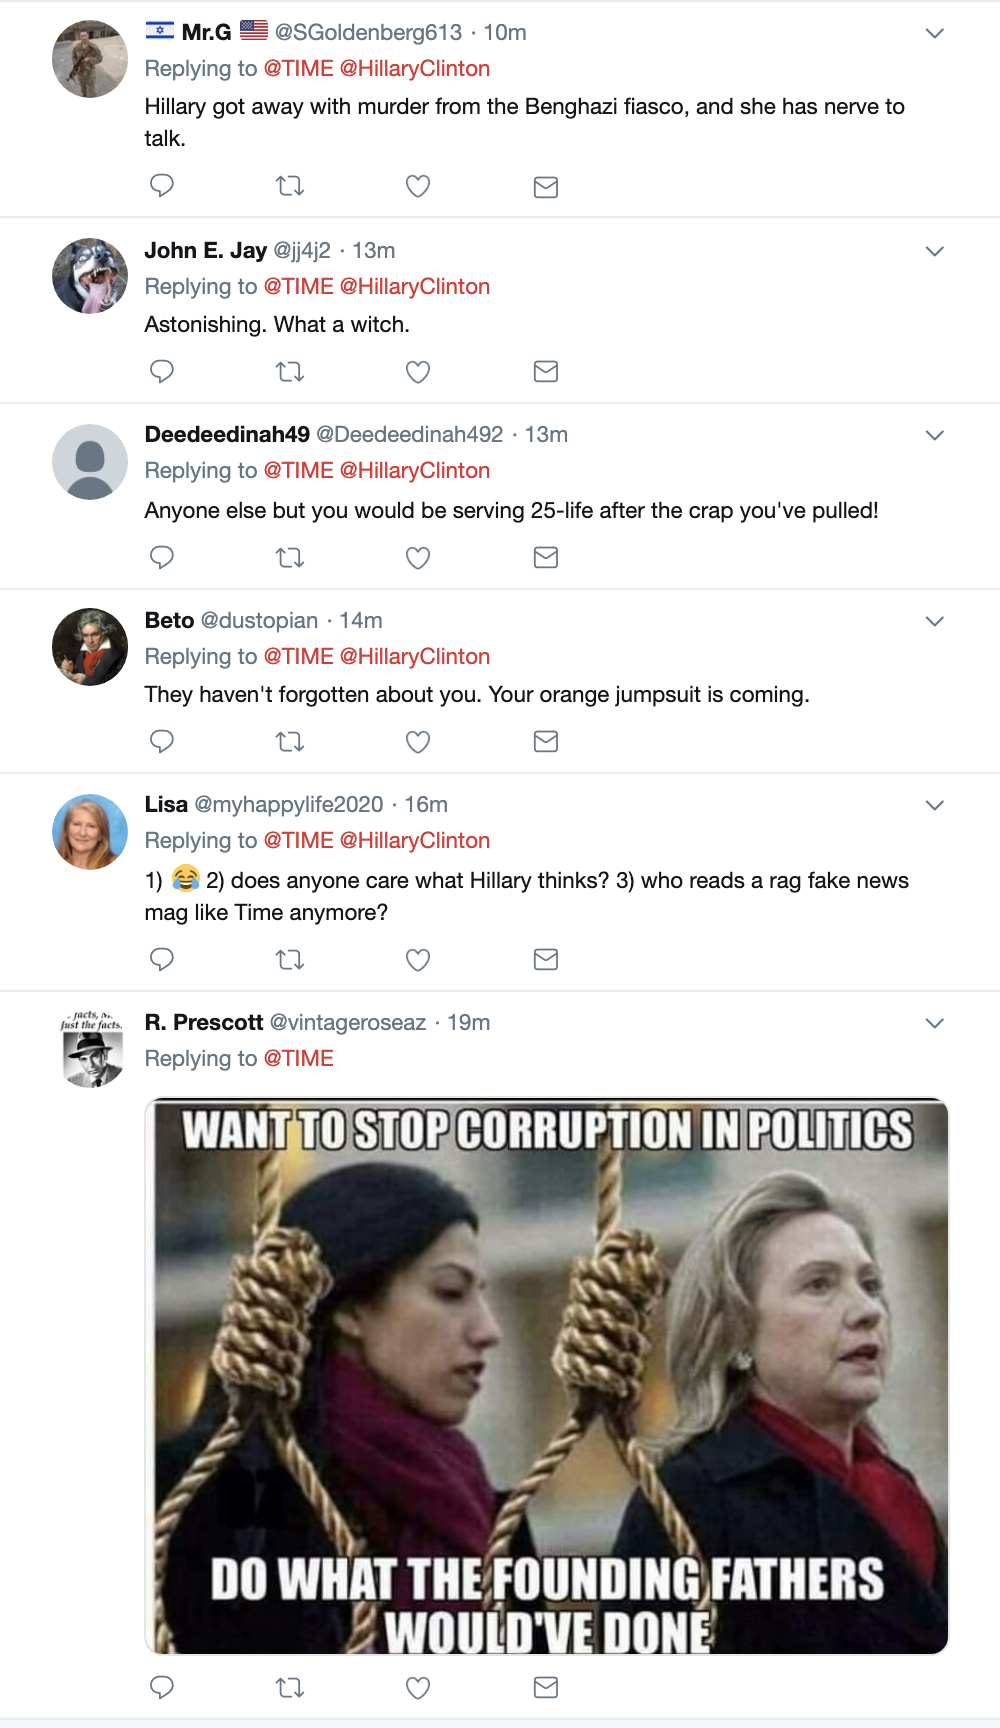 Screen-Shot-2019-04-23-at-3.07.52-PM Hillary Talks About Trump Going To Prison & People Lose Their Sh*t Corruption Crime Donald Trump Election 2016 Investigation Mueller Politics Robert Mueller Russia Top Stories